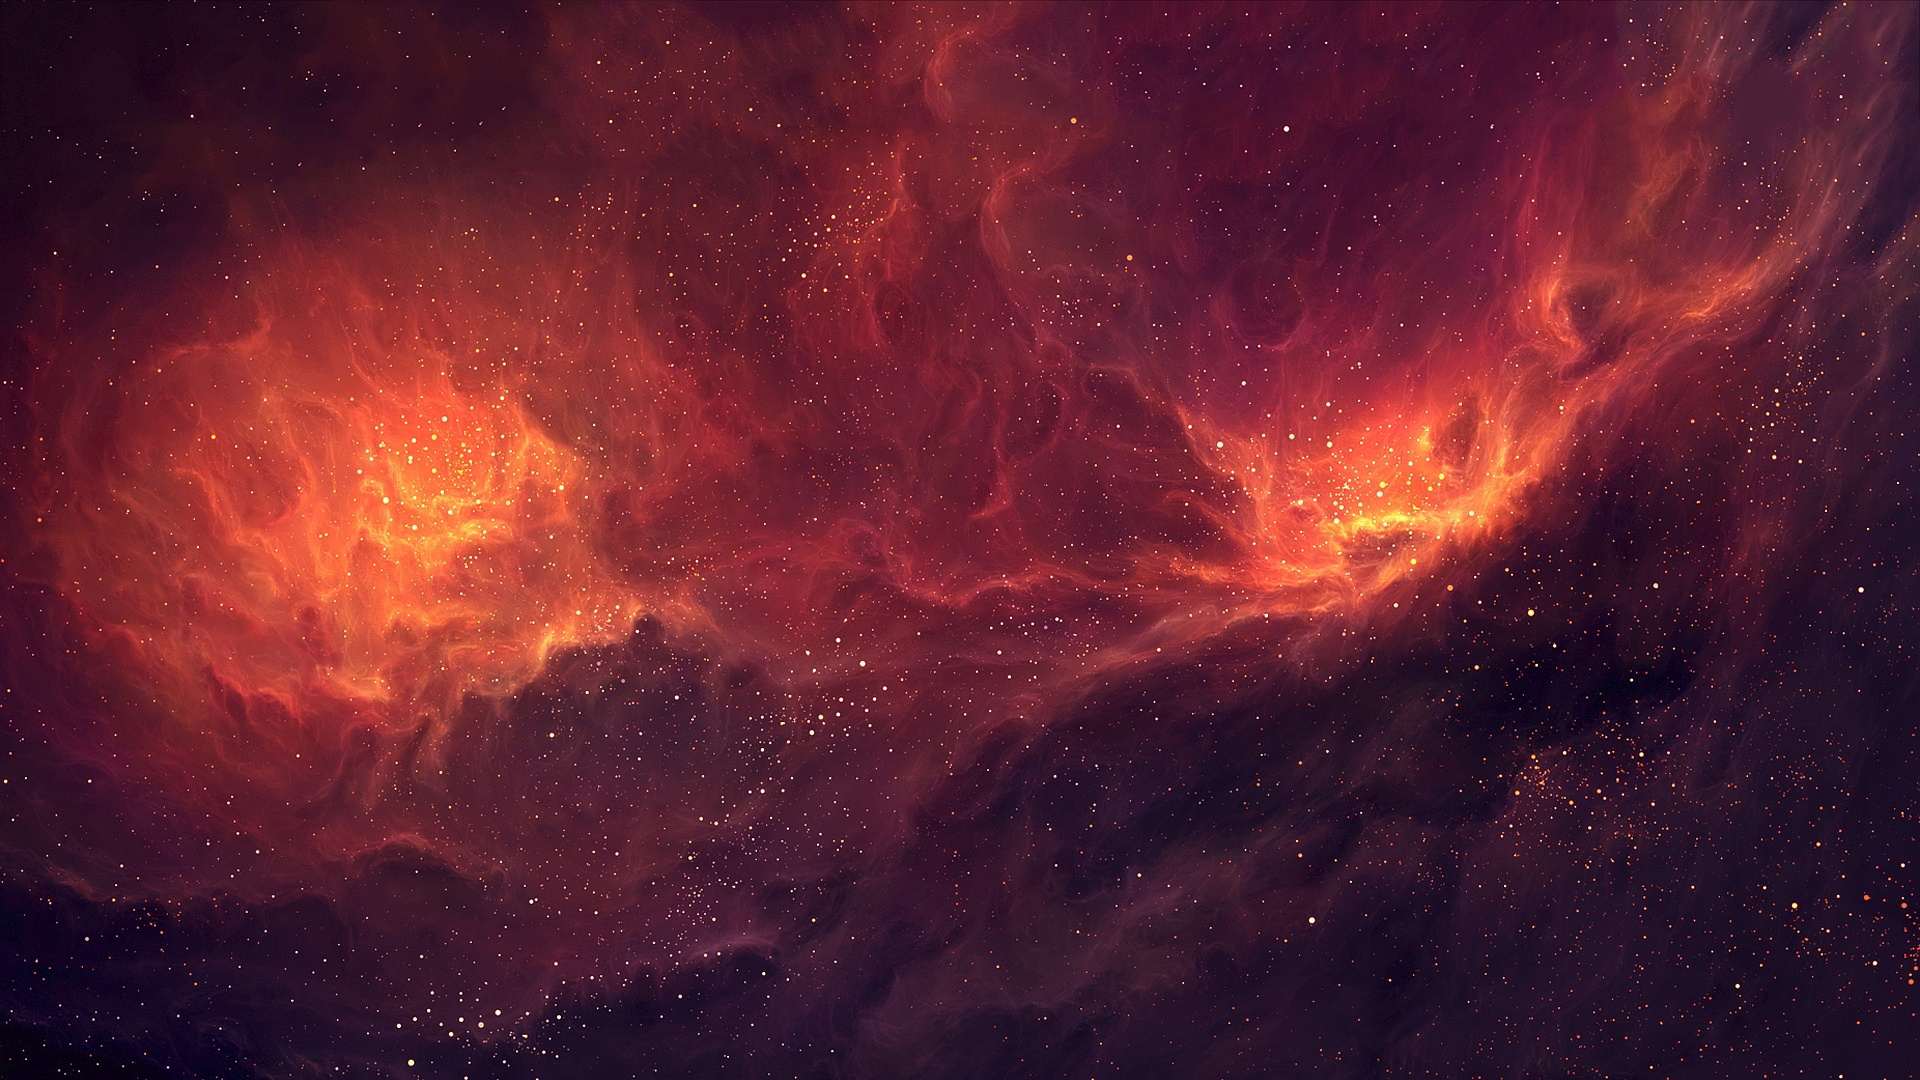 Galaxy Wallpaper Red